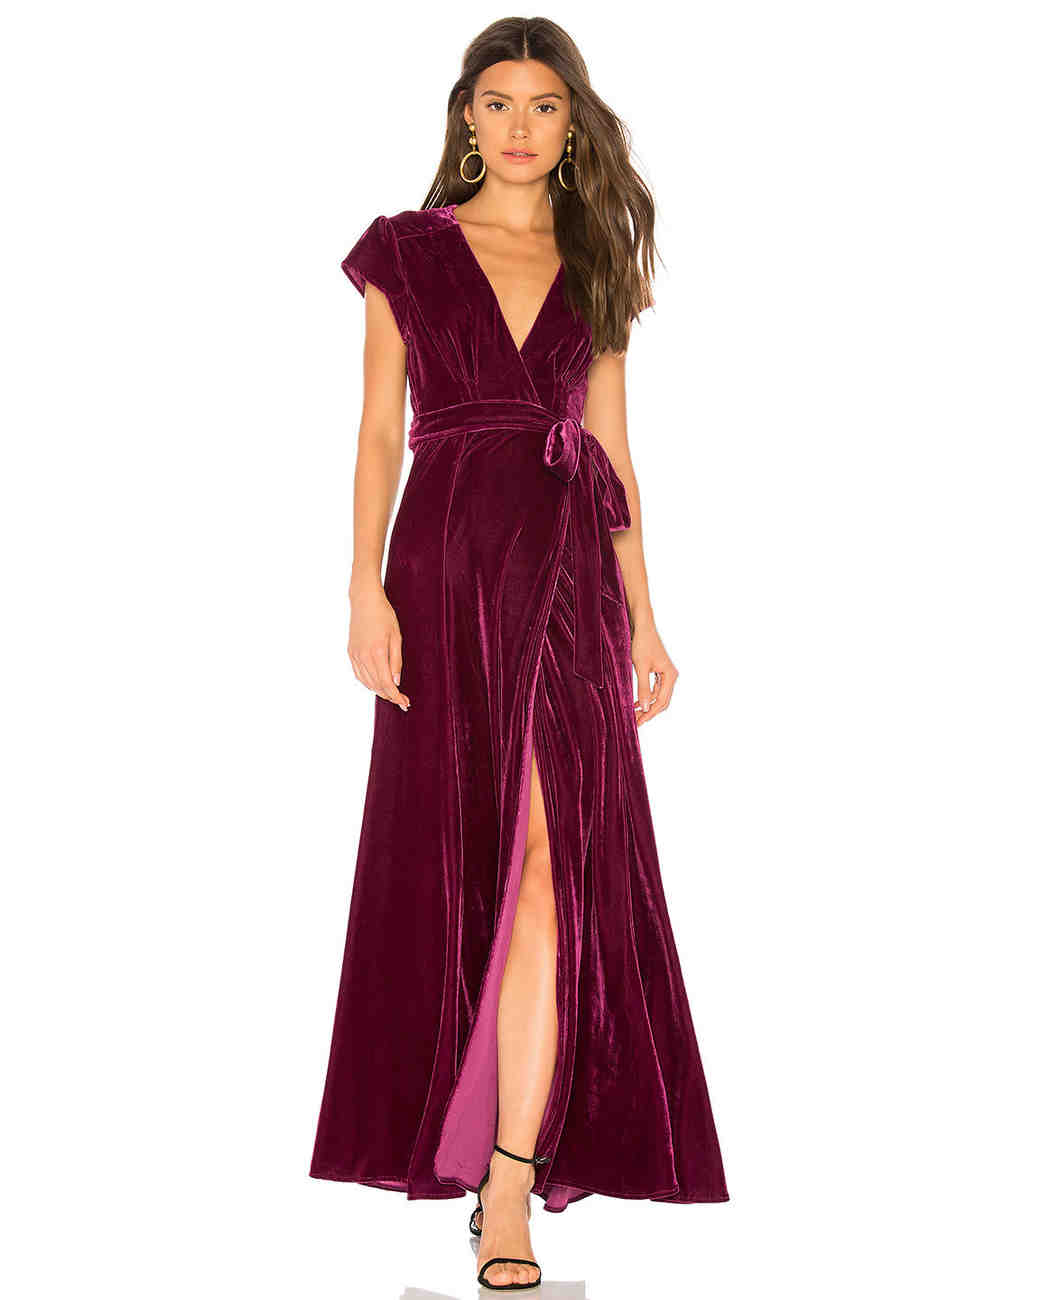 d8d2c43127 25 Beautiful Dresses to Wear as a Wedding Guest This Fall